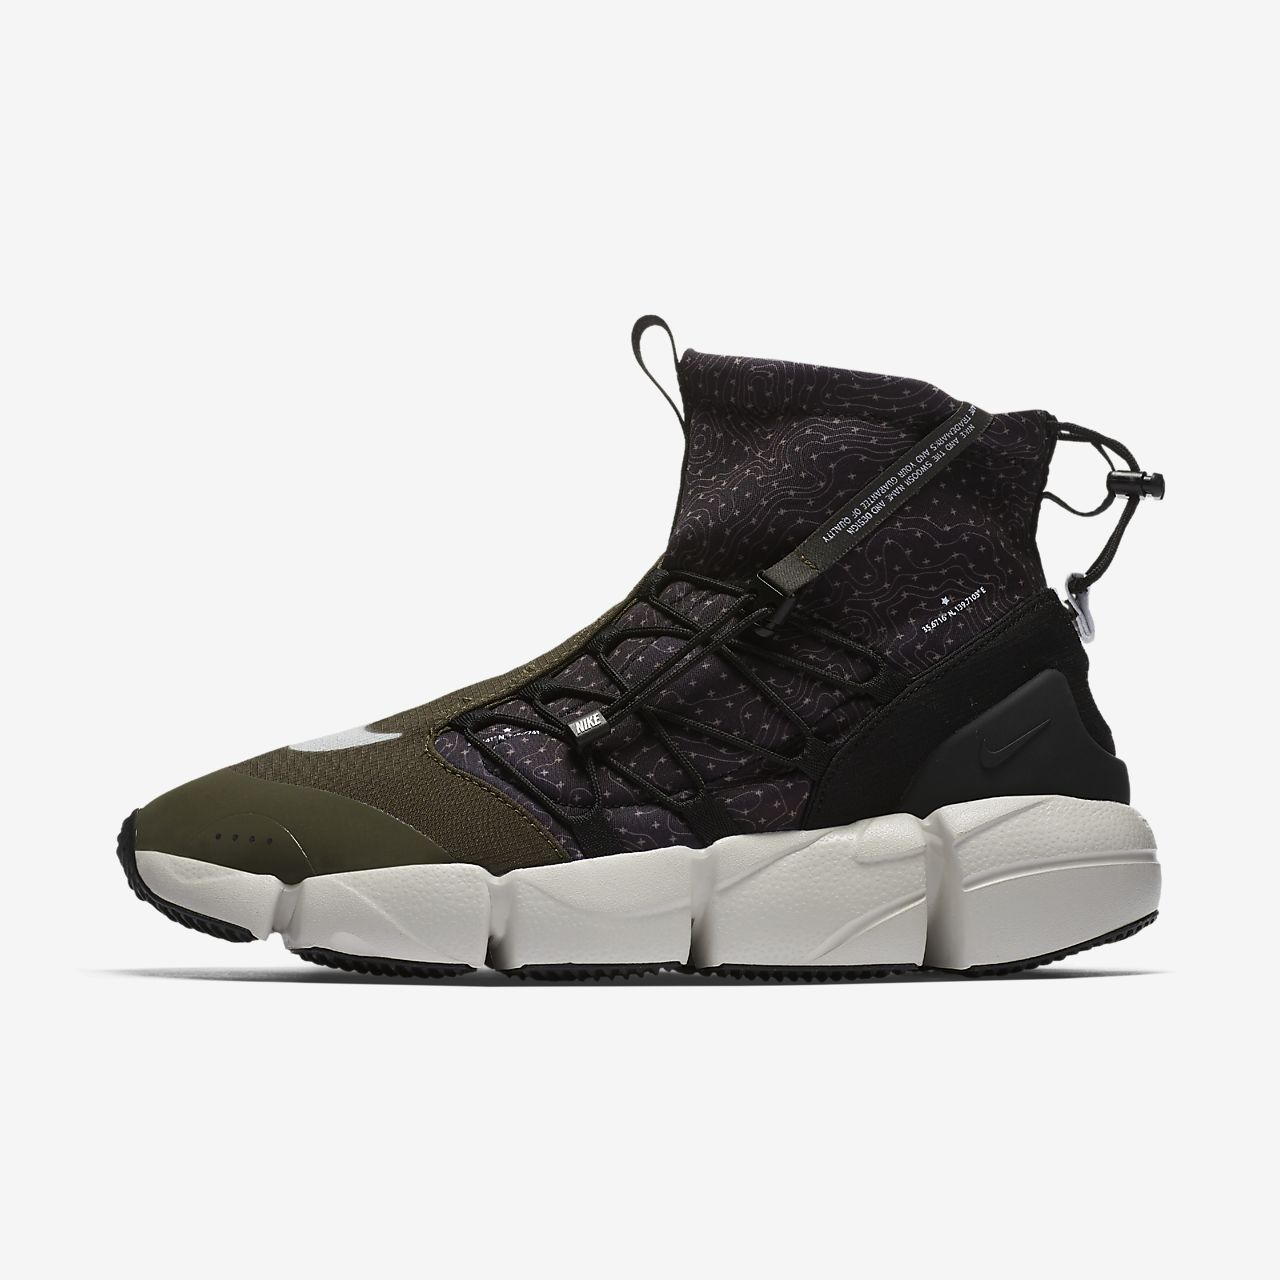 new product 46a15 0f010 ... Chaussure Nike Air Footscape Mid Utility pour Homme